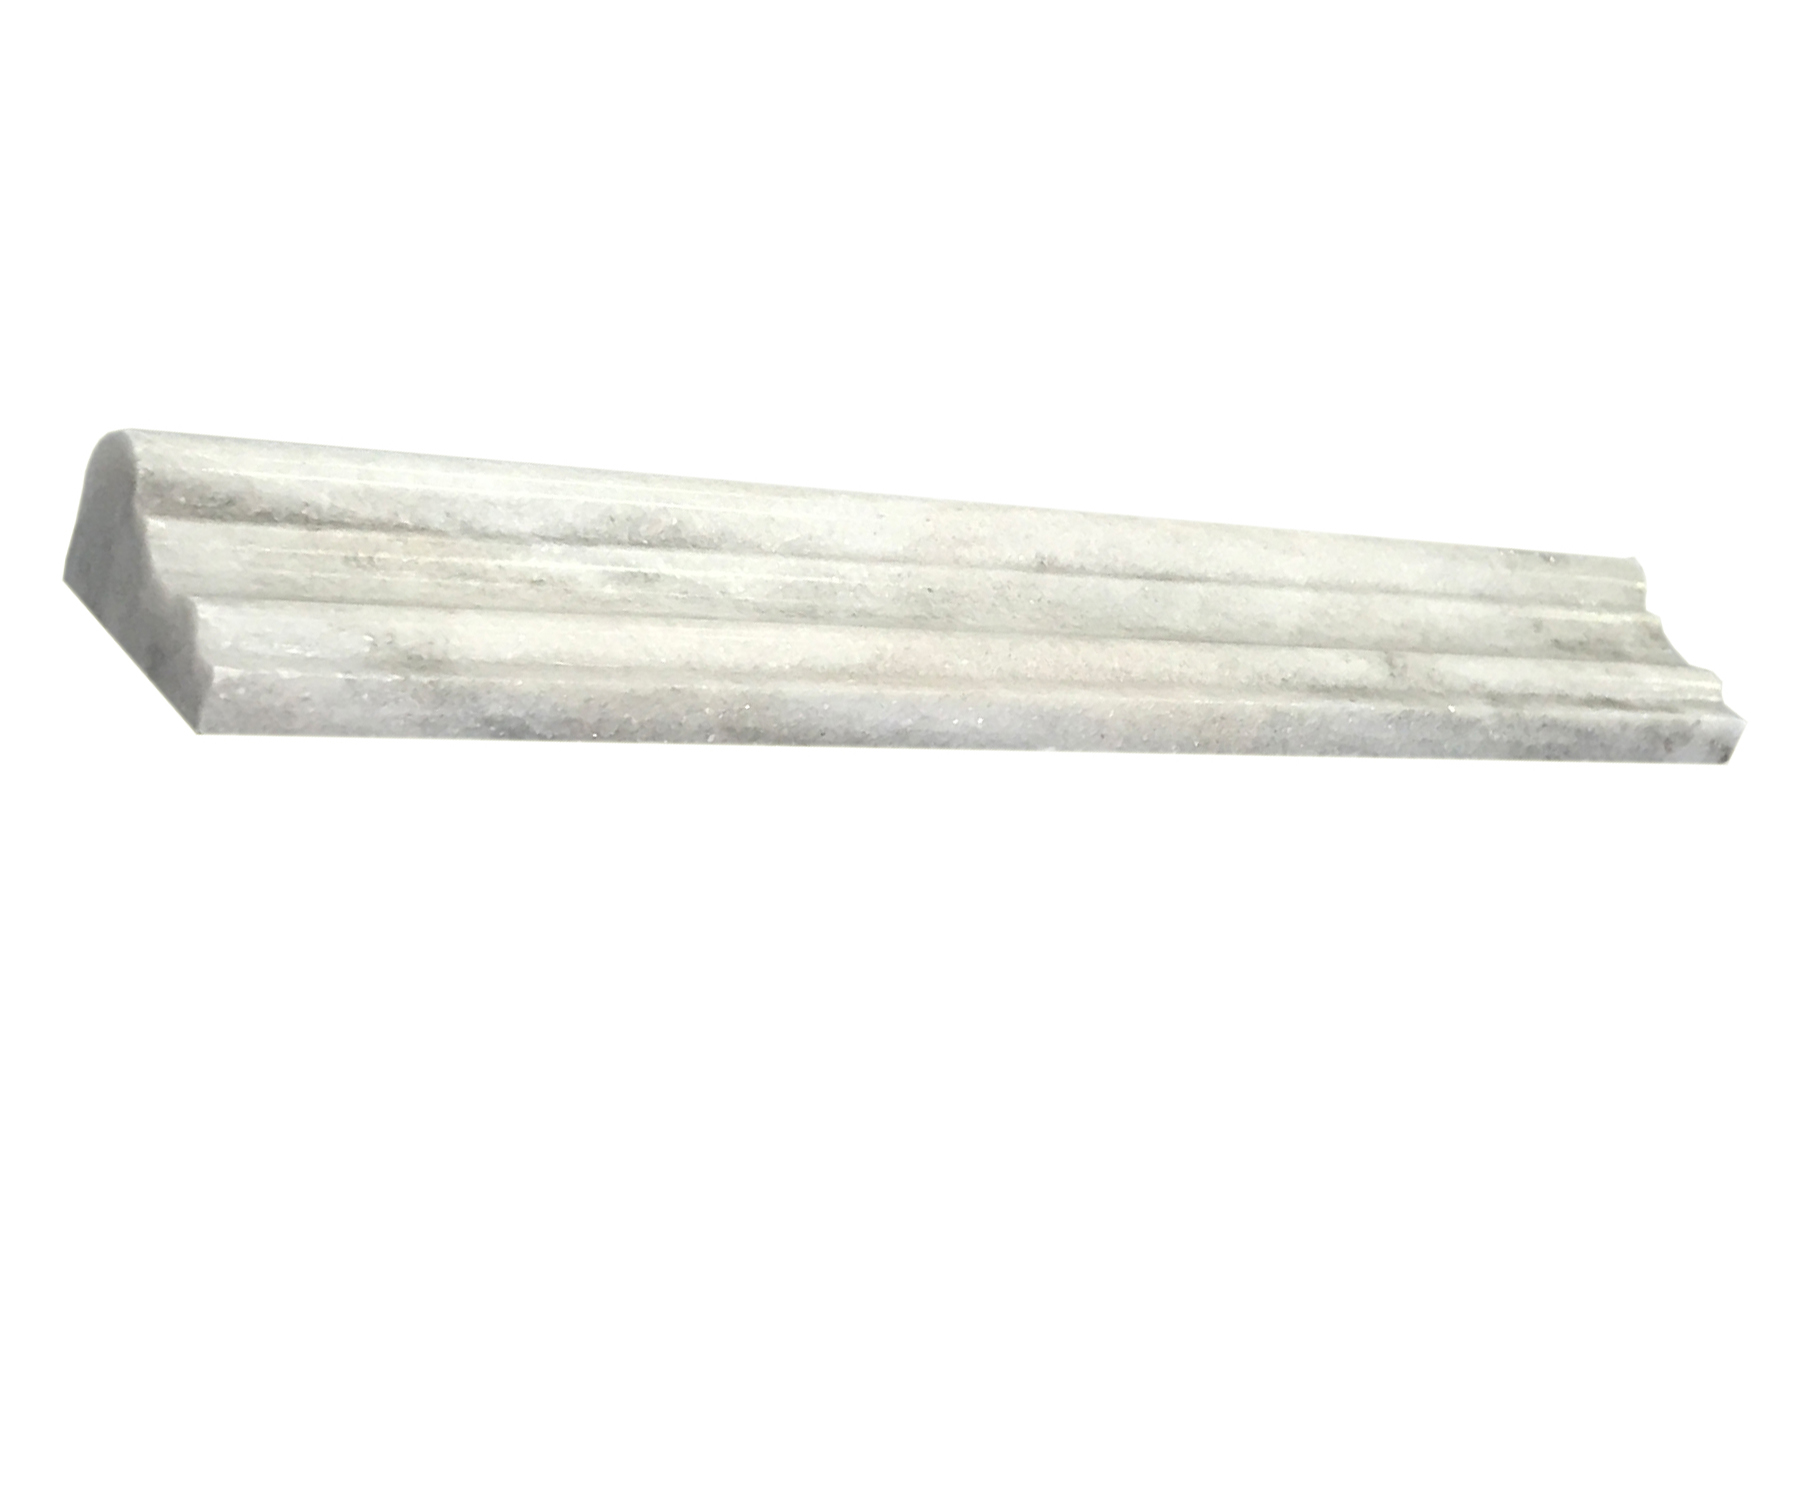 "Palissandro Crown Molding - 2"" x 12"" Image"